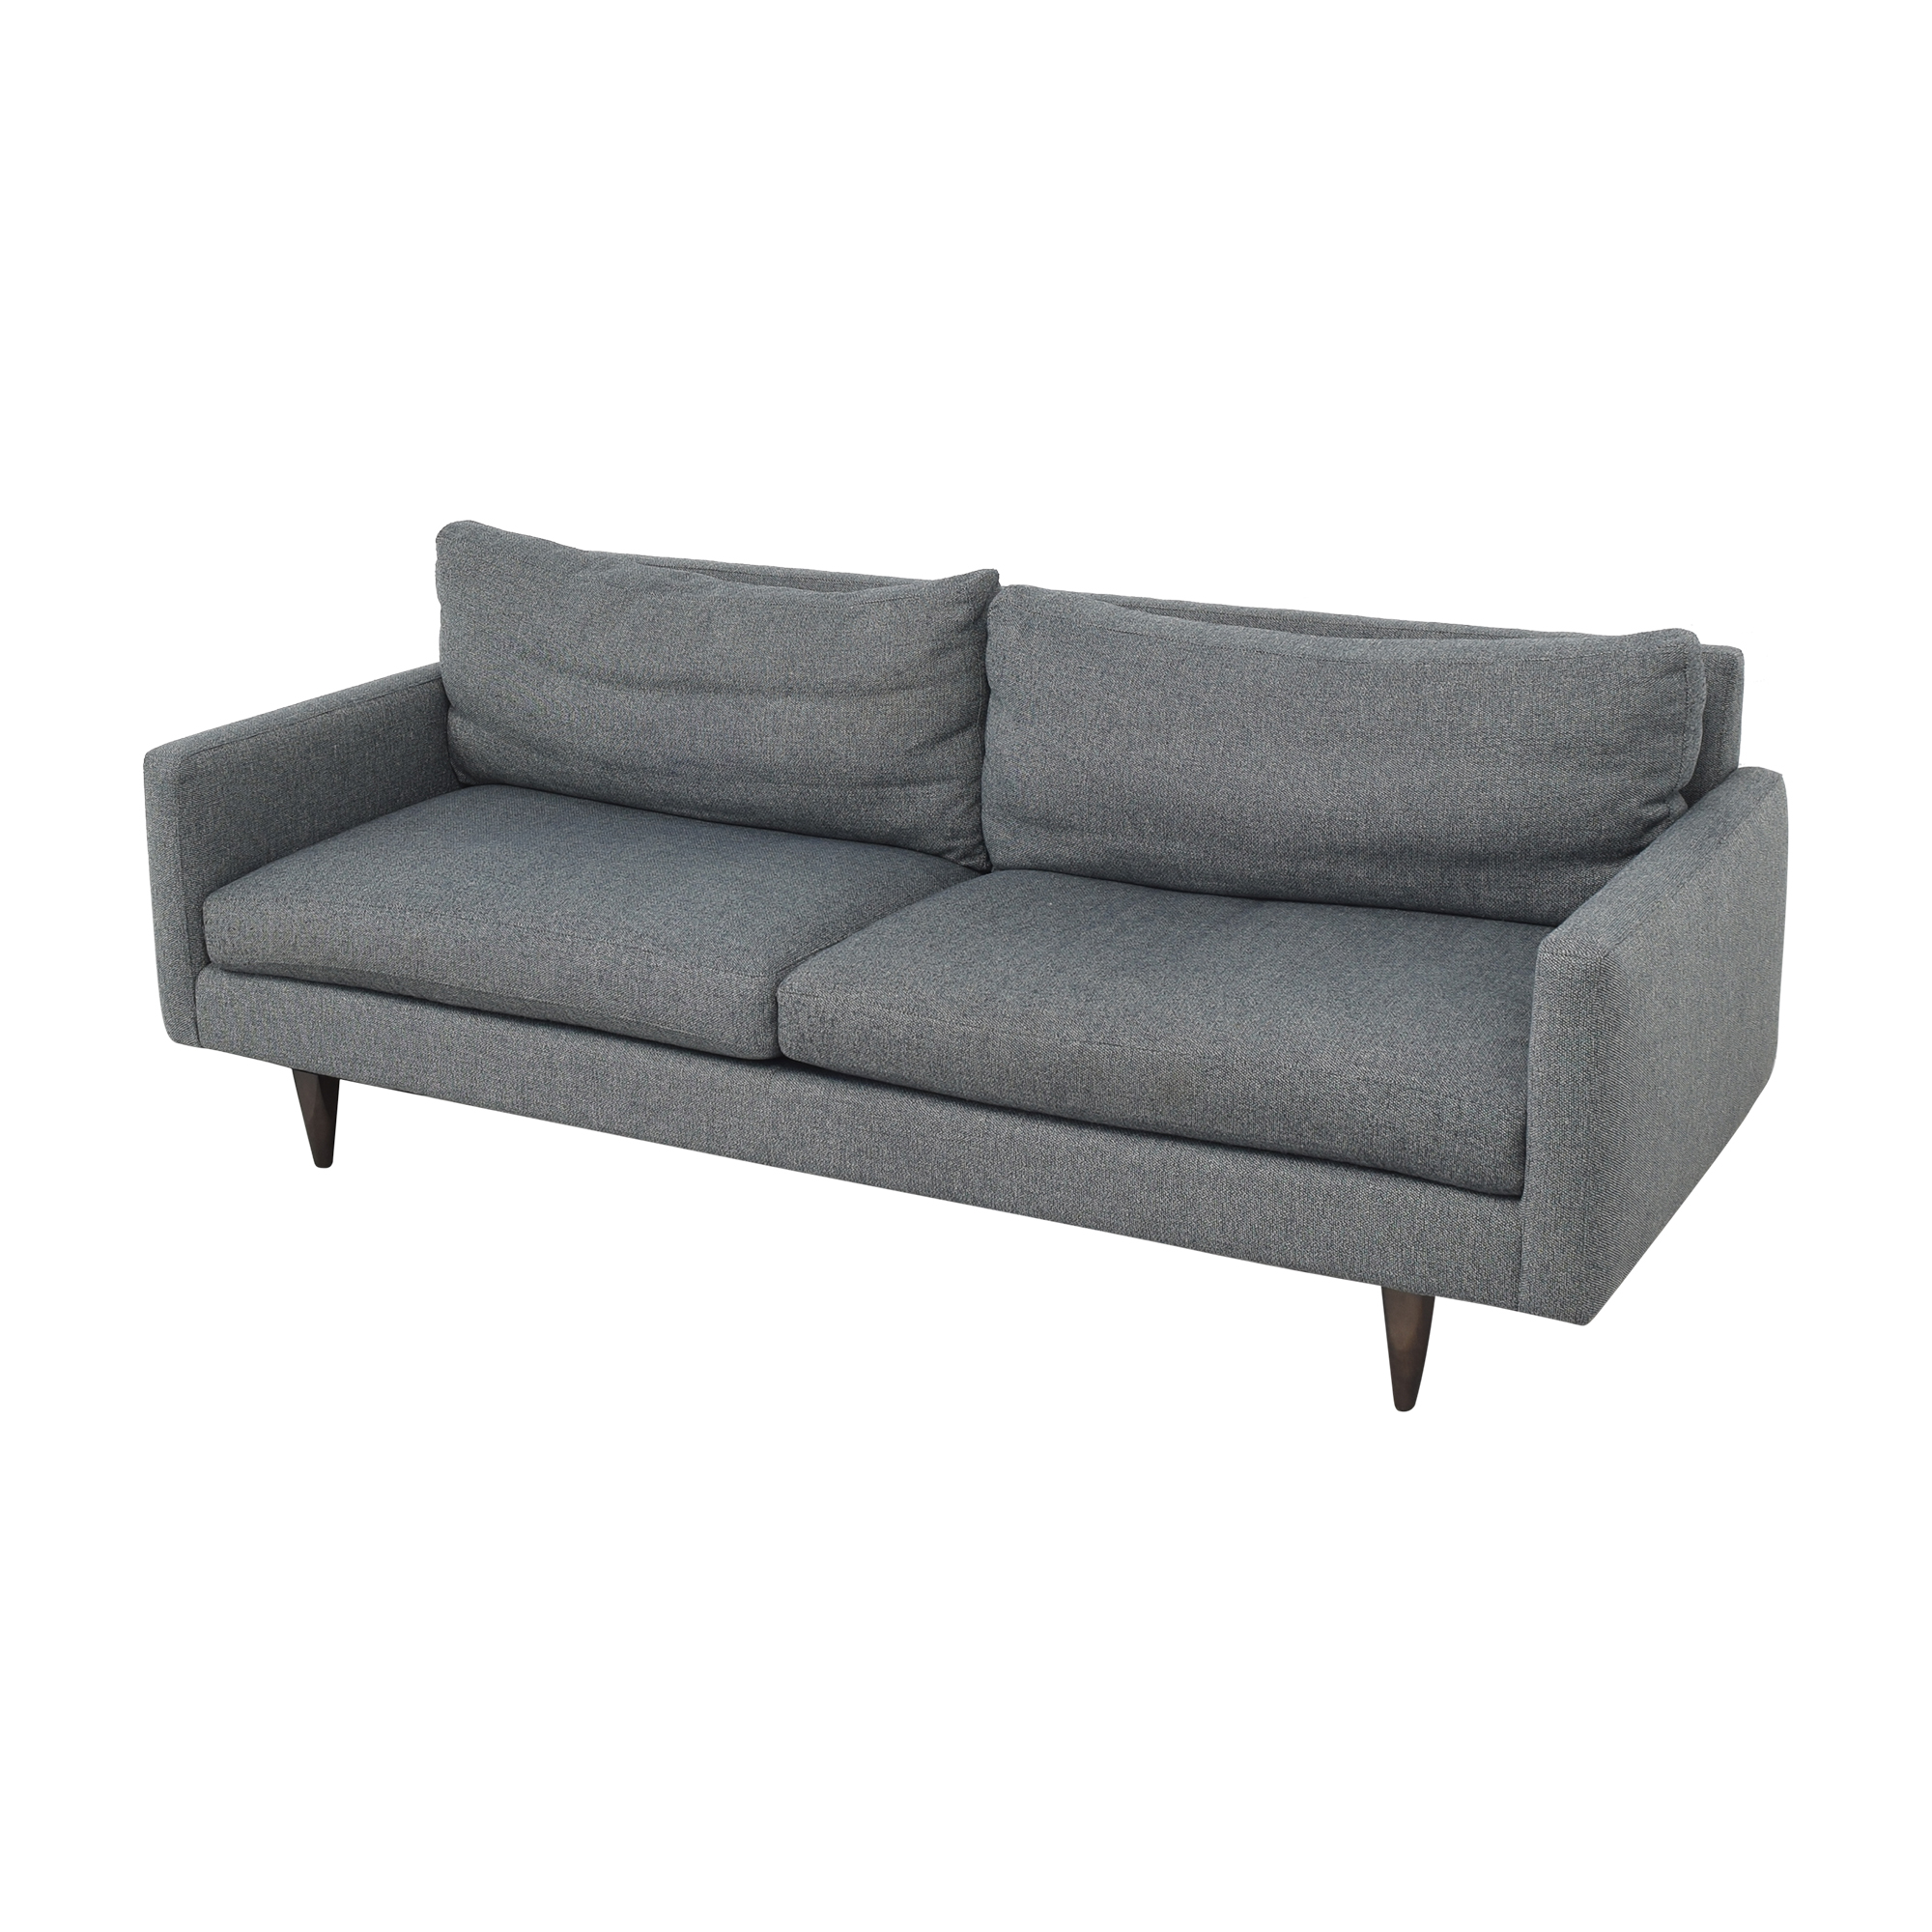 Room & Board Room & Board Jasper Two Cushion Sofa pa